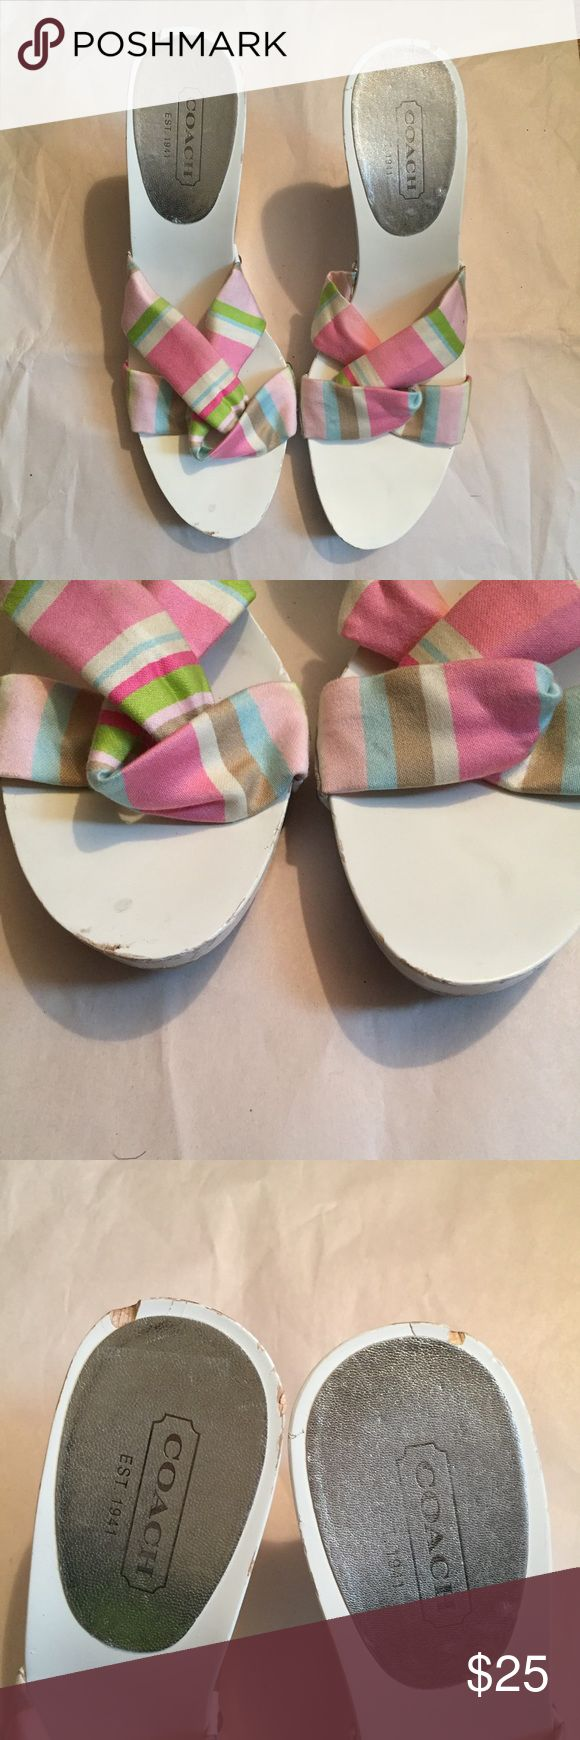 COACH Lina Printed Stripe Wedge Sz 8.5 Authentic Coach Lina Printed Stripe. Pink multi color strap with a white wedge. (Style A0022) Wedge is wood, and there are some nicks as shown in pictures . Really cute sandal for summer . Comes with box. Coach Shoes Wedges